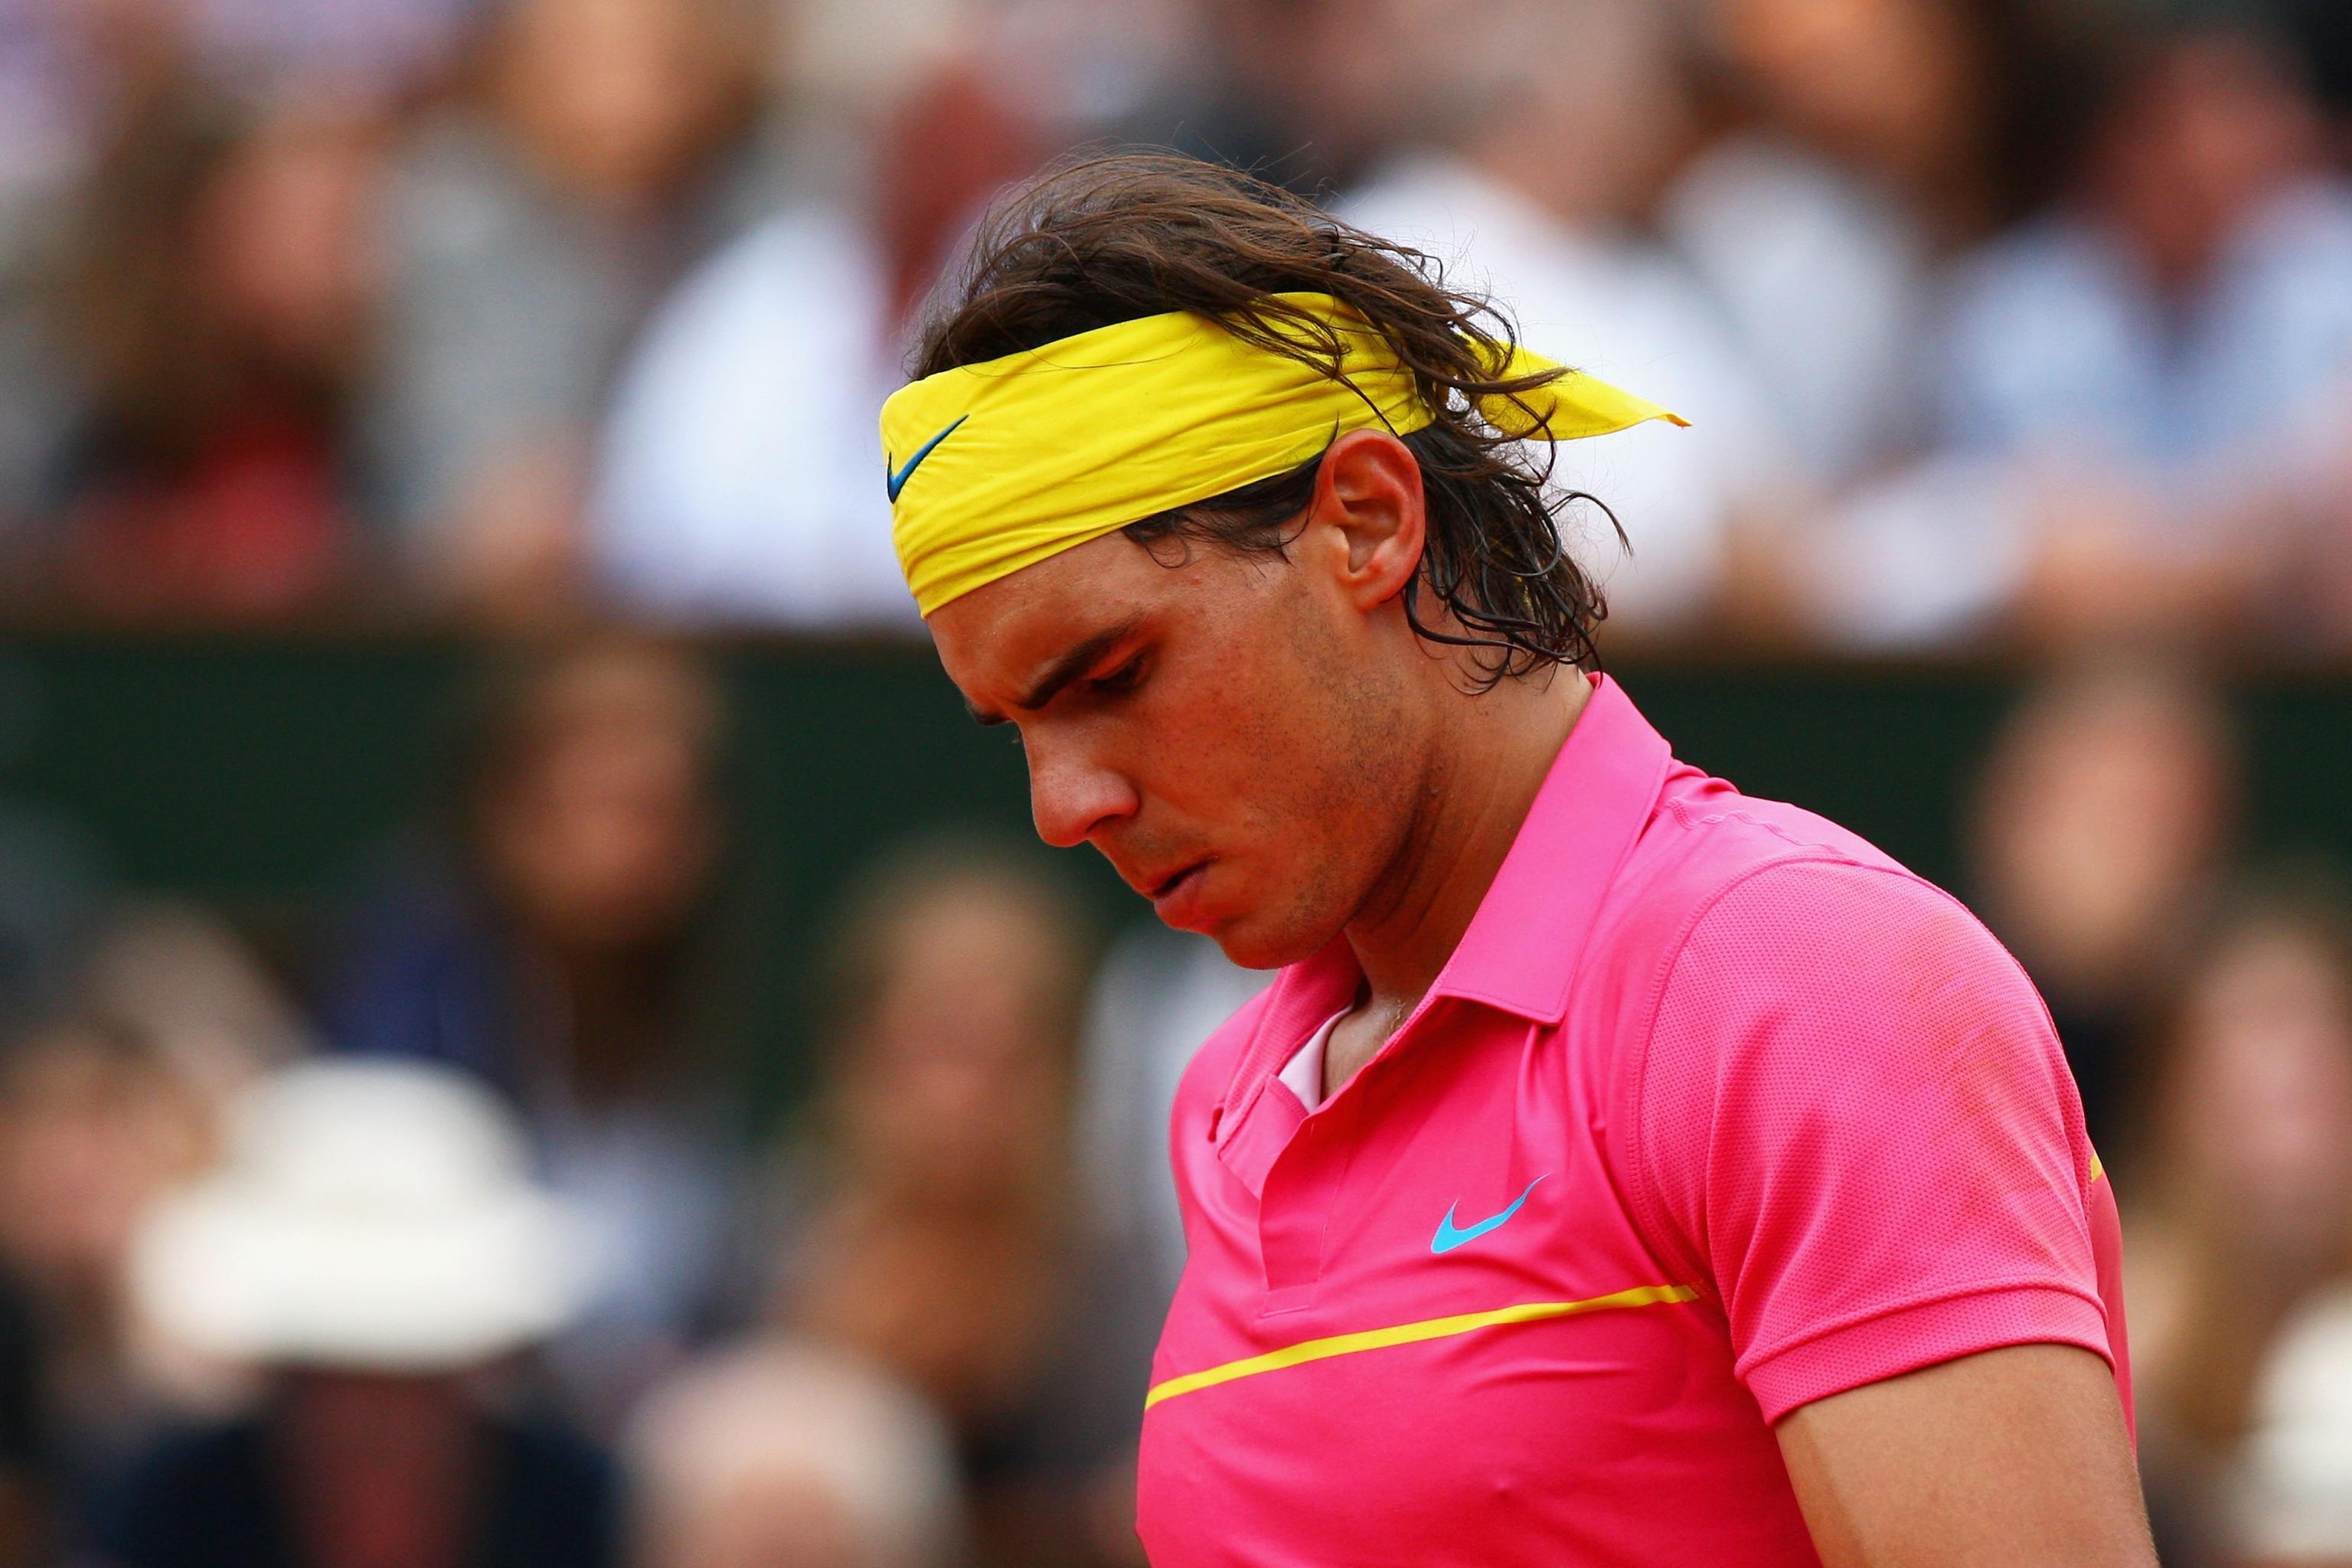 Rafael Nadal A Look Back At His 2009 French Open Loss To Robin Soderling Bleacher Report Latest News Videos And Highlights